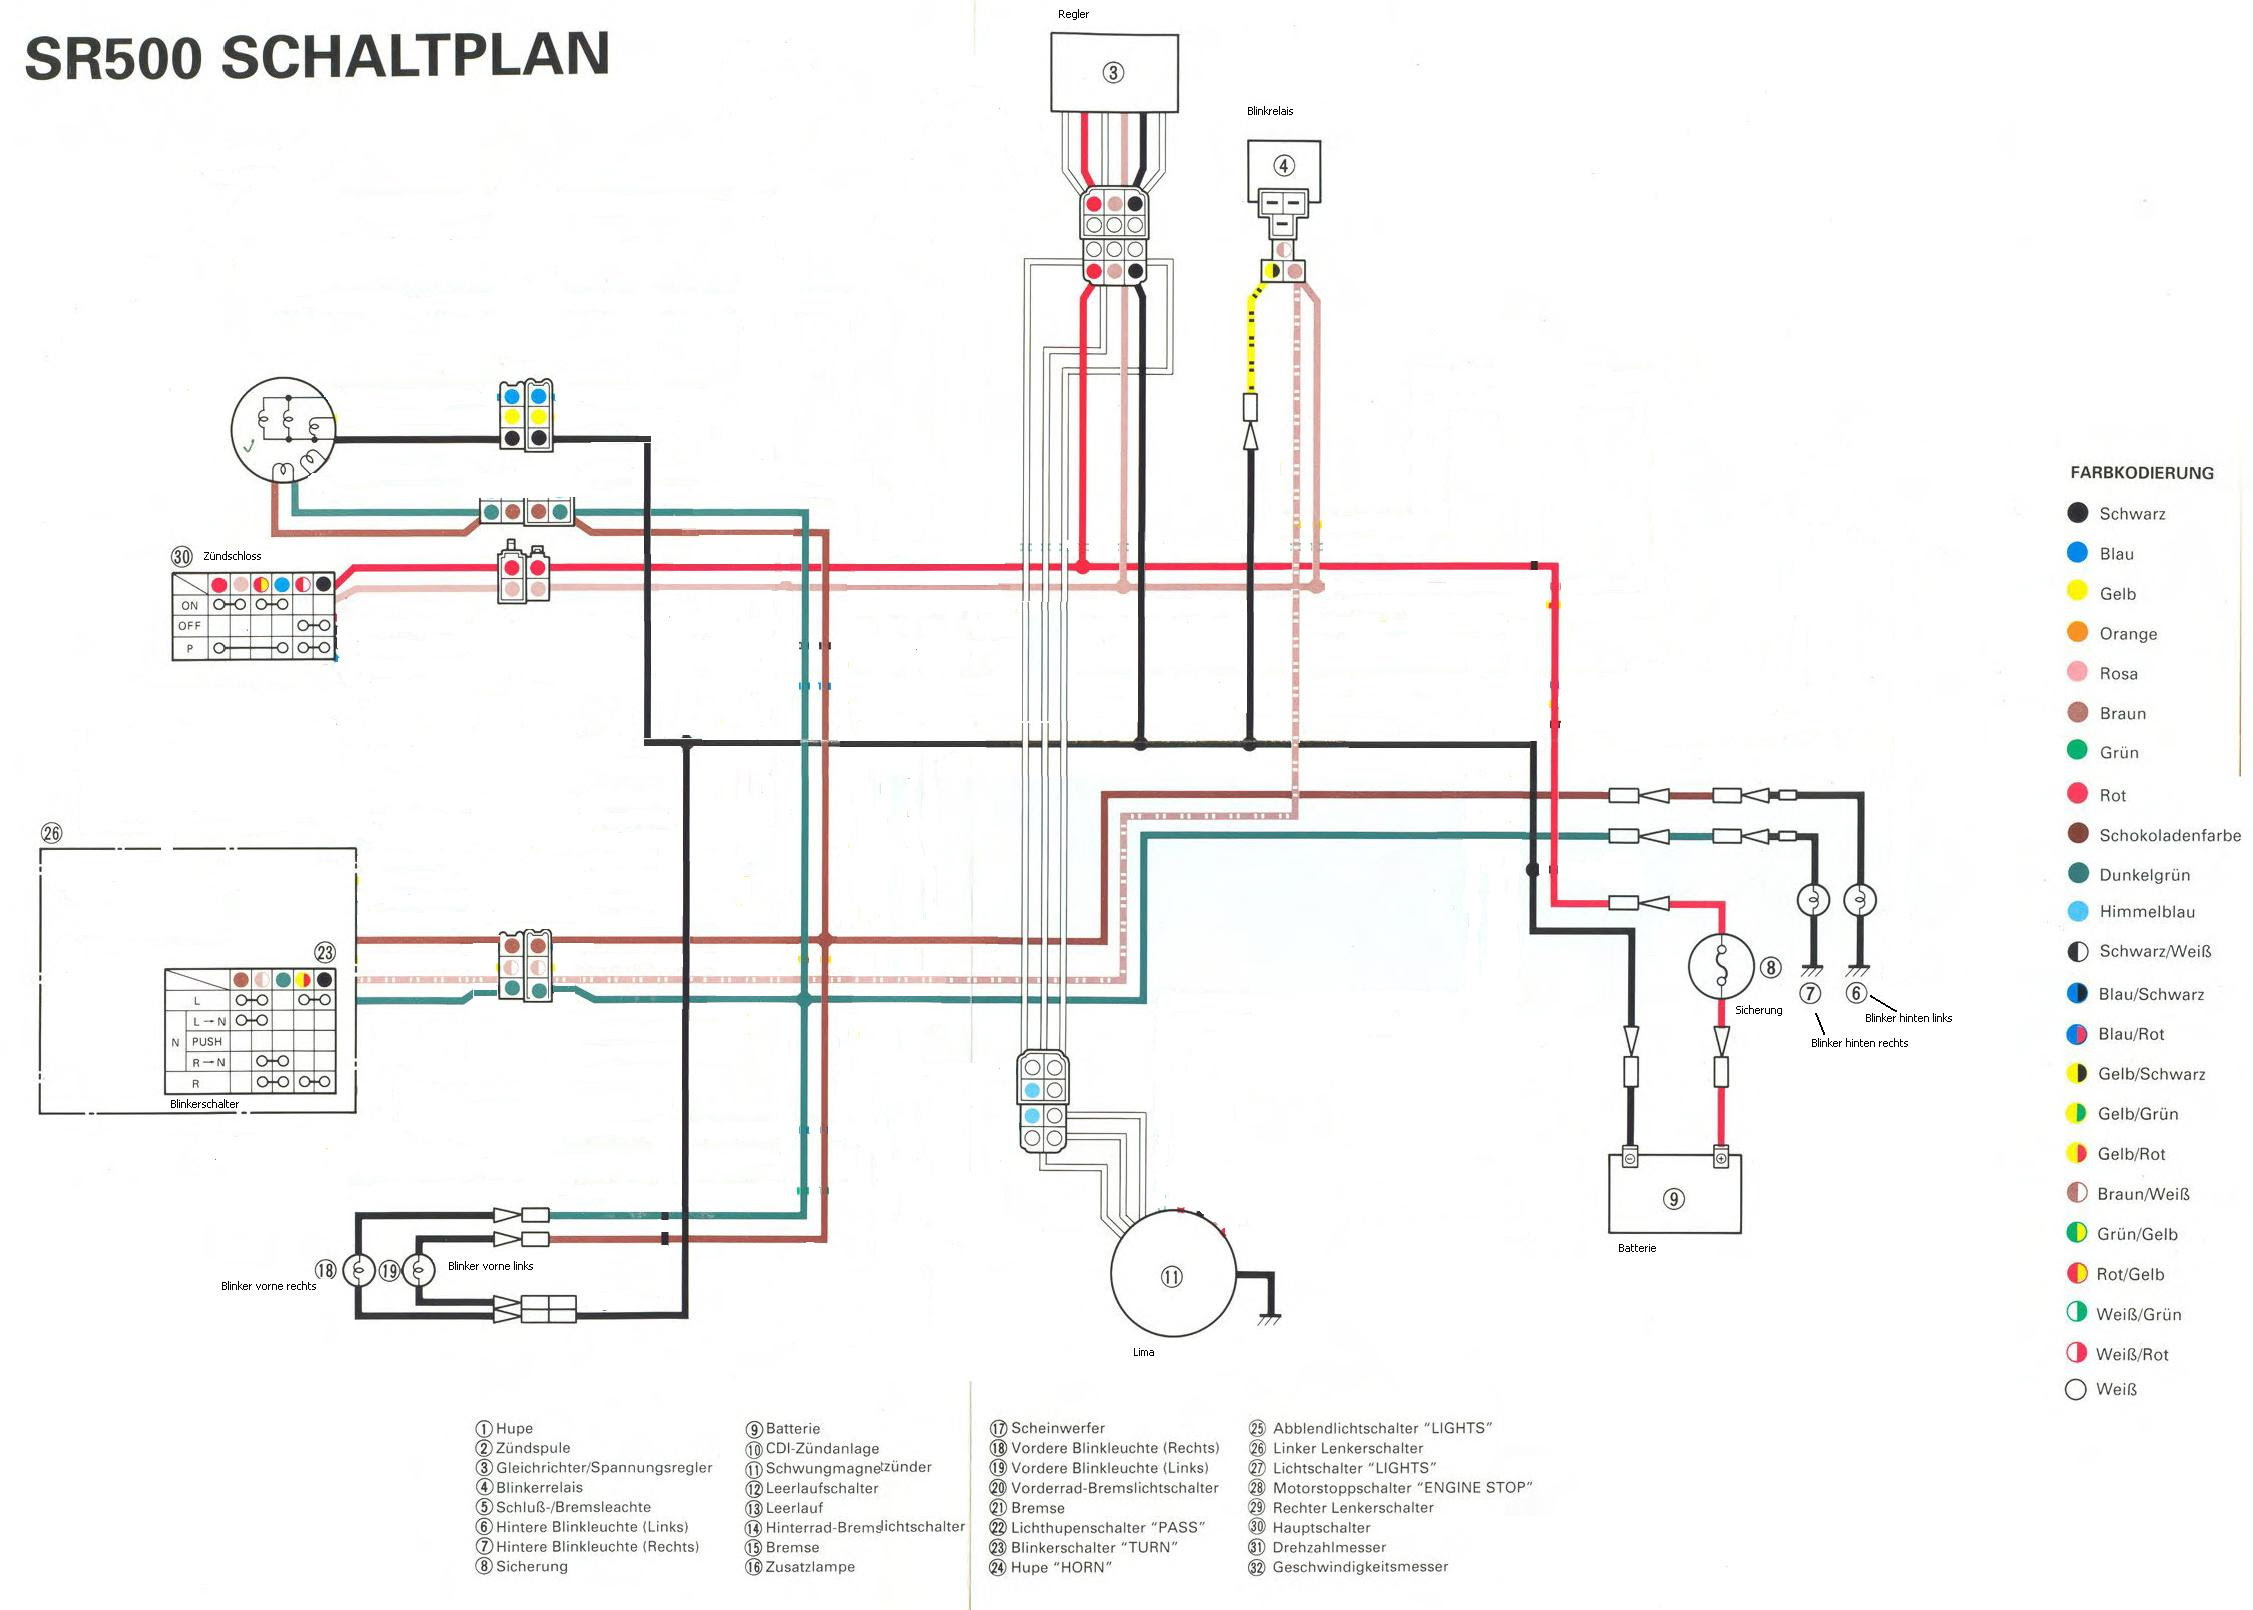 diagram] suzuki gs400 wiring diagram full version hd quality wiring diagram  - carschematics2c.angelux.it  carschematics2c.angelux.it